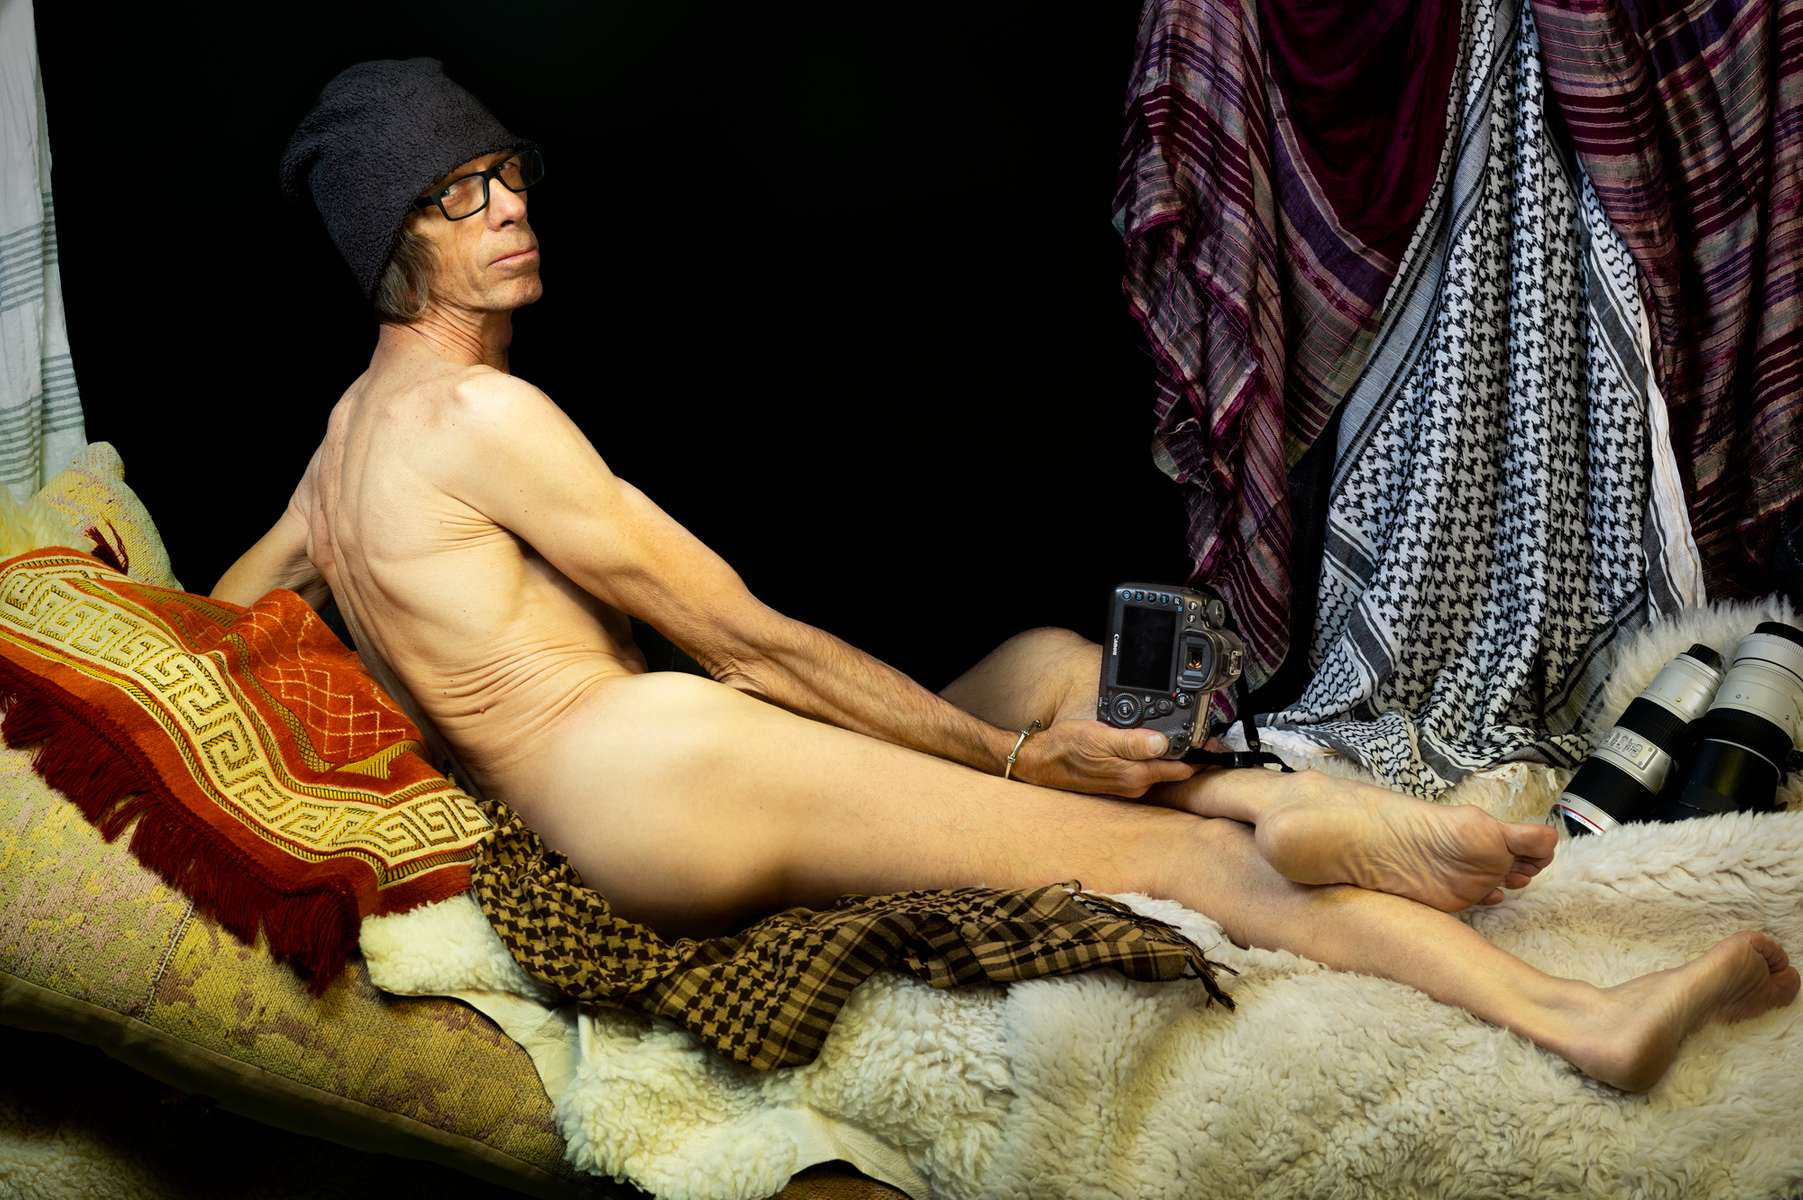 """From my earliest thoughts about Ingre's Grand Odalisque, I knew that I needed a white male photojournalist for this photo; I knew that I wanted to comment on the othering perpetuated by the white male gaze of my industry for decades. This was my response to learning that Ingres' Odalisque, painted in 1814, was used to justify French colonialism -- an othering of peoples in the Near East and North Africa as a way of {quote}proving{quote} that they desperately needed France's {quote}civilizing{quote} authority. It's something that photojournalism, unfortunately, has done for a long, long time – justified a white, male Western point of view which has """"othered"""" women and people and cultures of color.In May 2019, in Sarajveo, at the annual general meeting of my photo agency, VII Photo, I asked my colleague Christopher Morris to pose for me, and he agreed, with some trepidation. Chris was a natural choice for me. There are connections between us. He covered the war in Bosnia; I covered the aftermath. The photo I made was also my invitation to him, to engage in a dialogue between artists about nudity and representation and who does the gazing.And we were in Bosnia, which was an important part of the Ottoman Empire – the very era which also prompted Ingres' painting and """"othering"""" of cultures France sought to bring under its subjugation. This was the place to make the photo, and Chris was the perfect model.I'm weary as I write this. It's the summer of 2019 and it's America, and the president of the United States (I will not use his name in the same sentence as the word """"president"""") others some one or some group of people with almost every tweet he makes, almost every time he opens his mouth. White, male, western power – and the power of naming.But we're fighting back, and women are leading the way. Power is shifting, slowly but surely, and I believe images can help move that story forward. I am weary, as I said, but I am hopeful."""